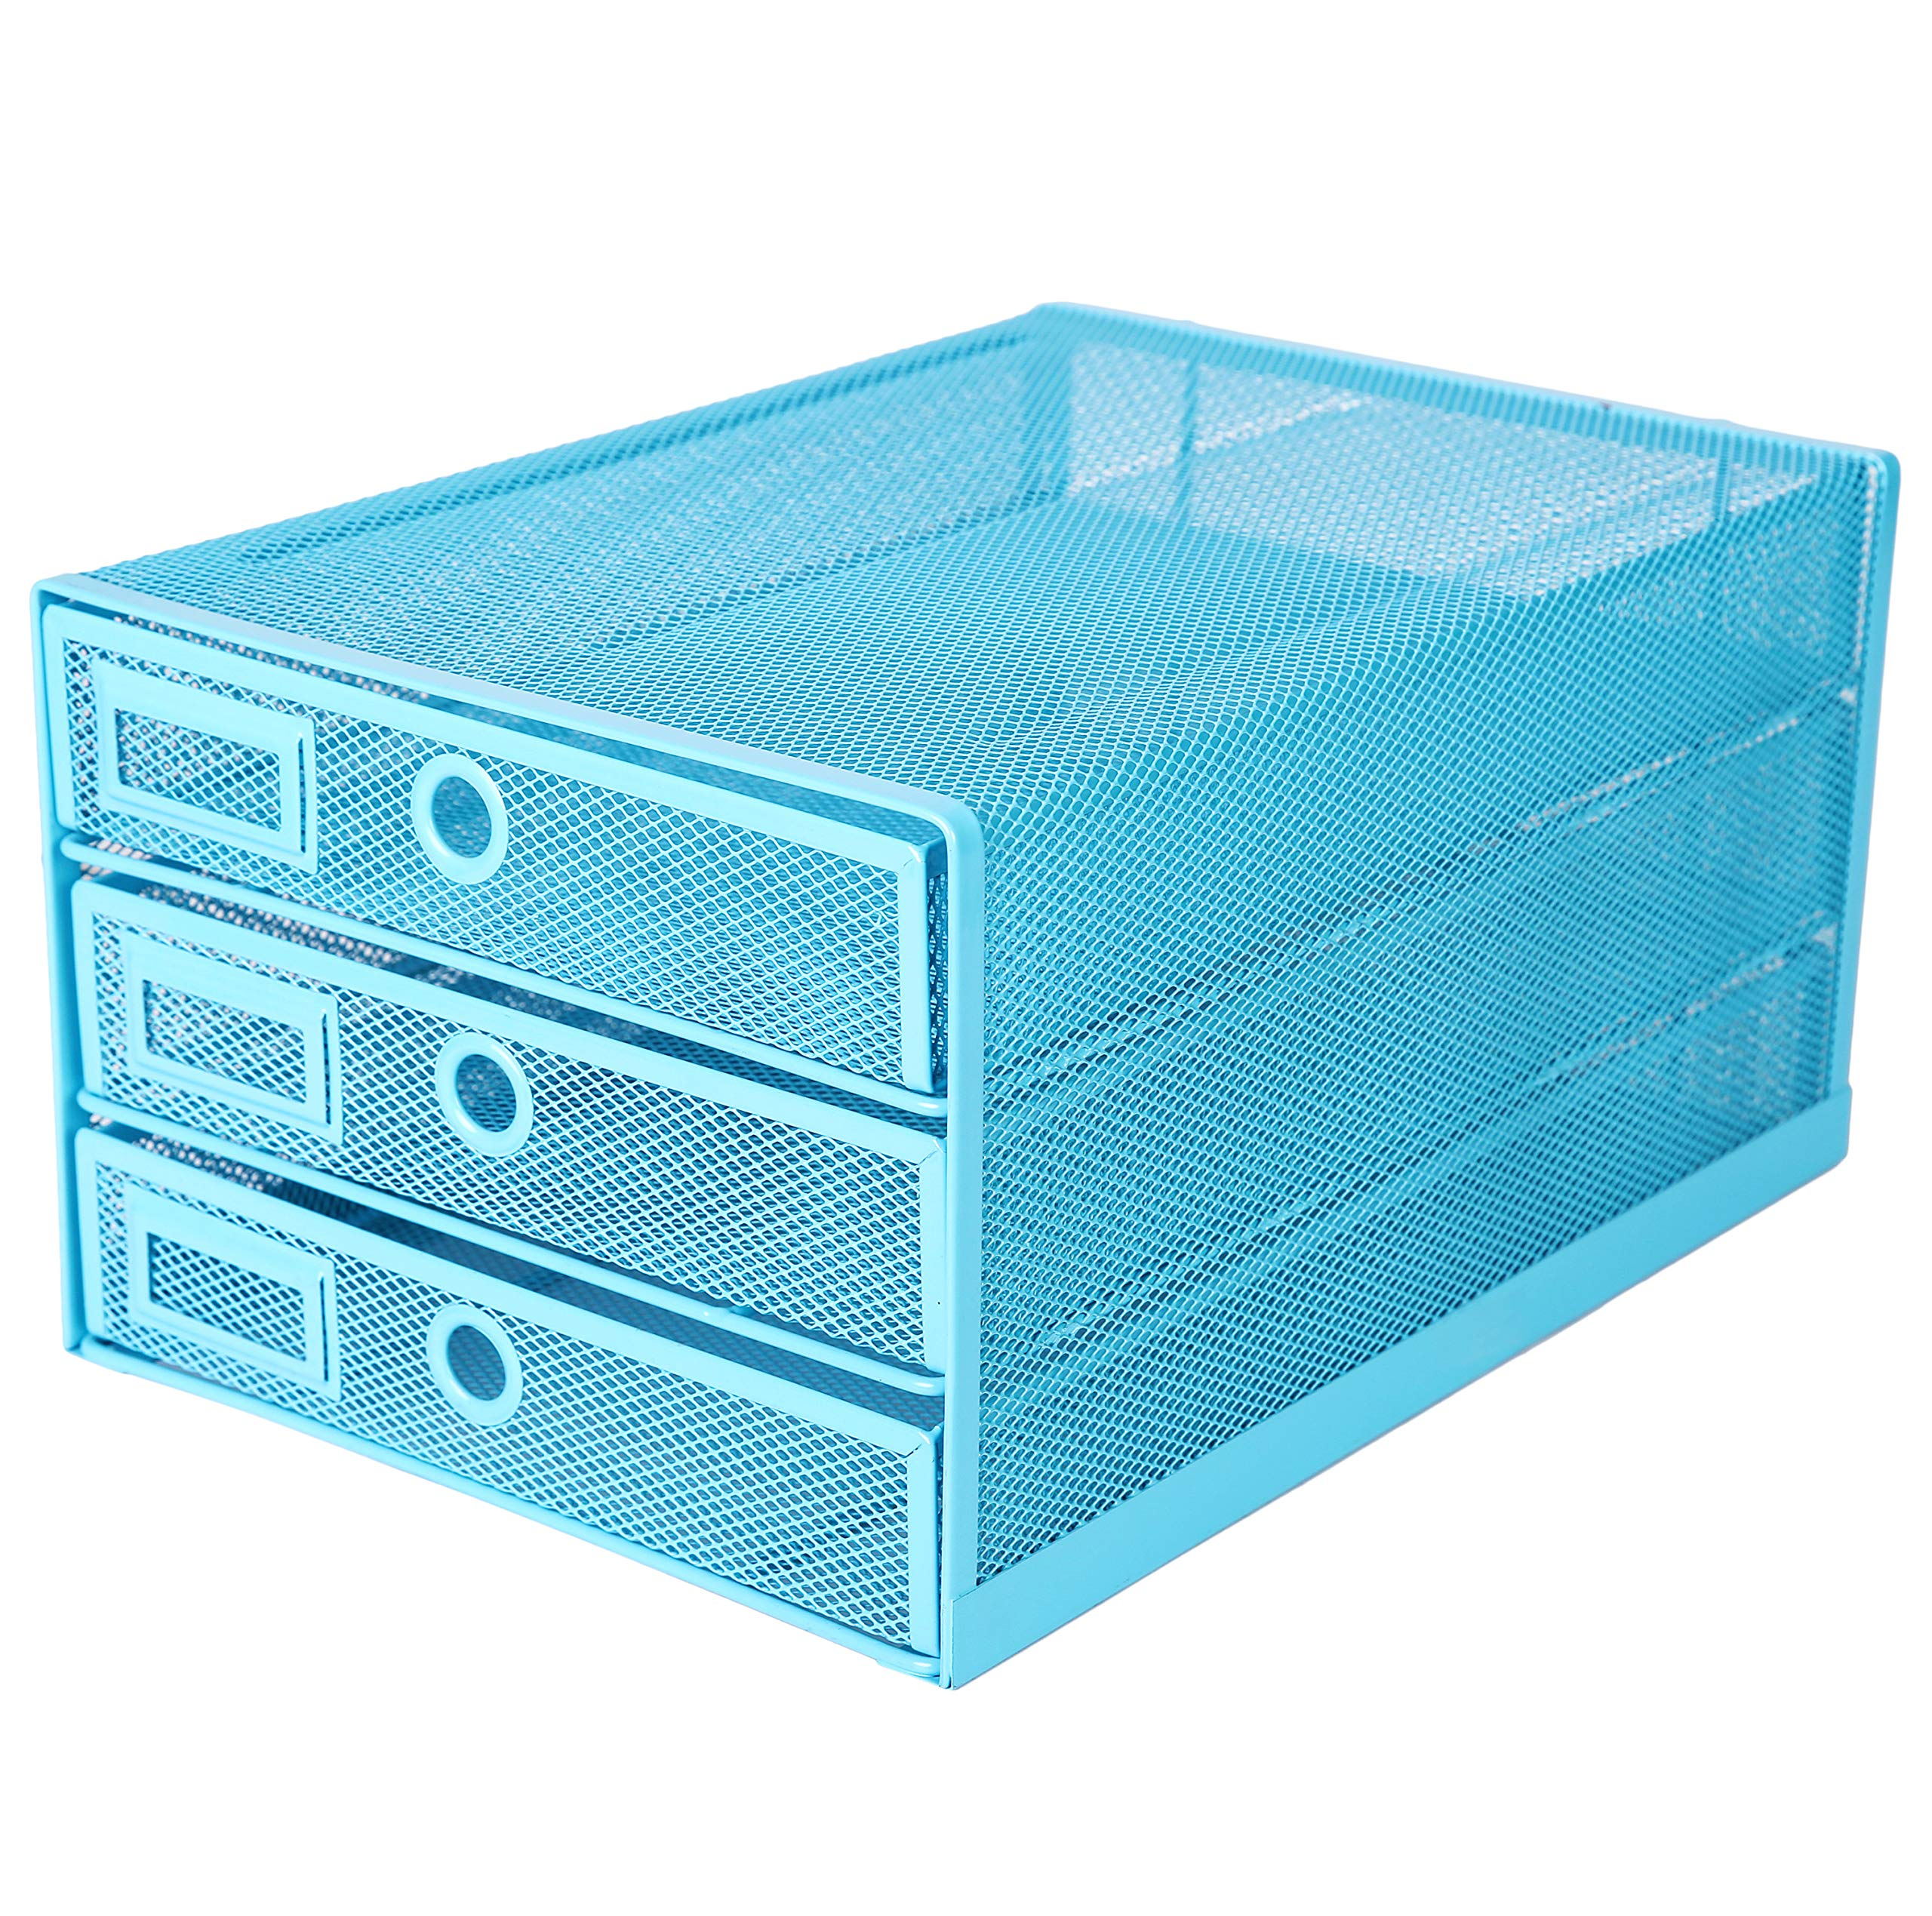 Exerz Desk Organizer Wire Mesh 3 Tier Sliding Drawers Paper Sorter/Multifunctional/Premium Solid Construction for Letters, Documents, Mail, Files, Paper, Kids' Art Supplies (Blue)